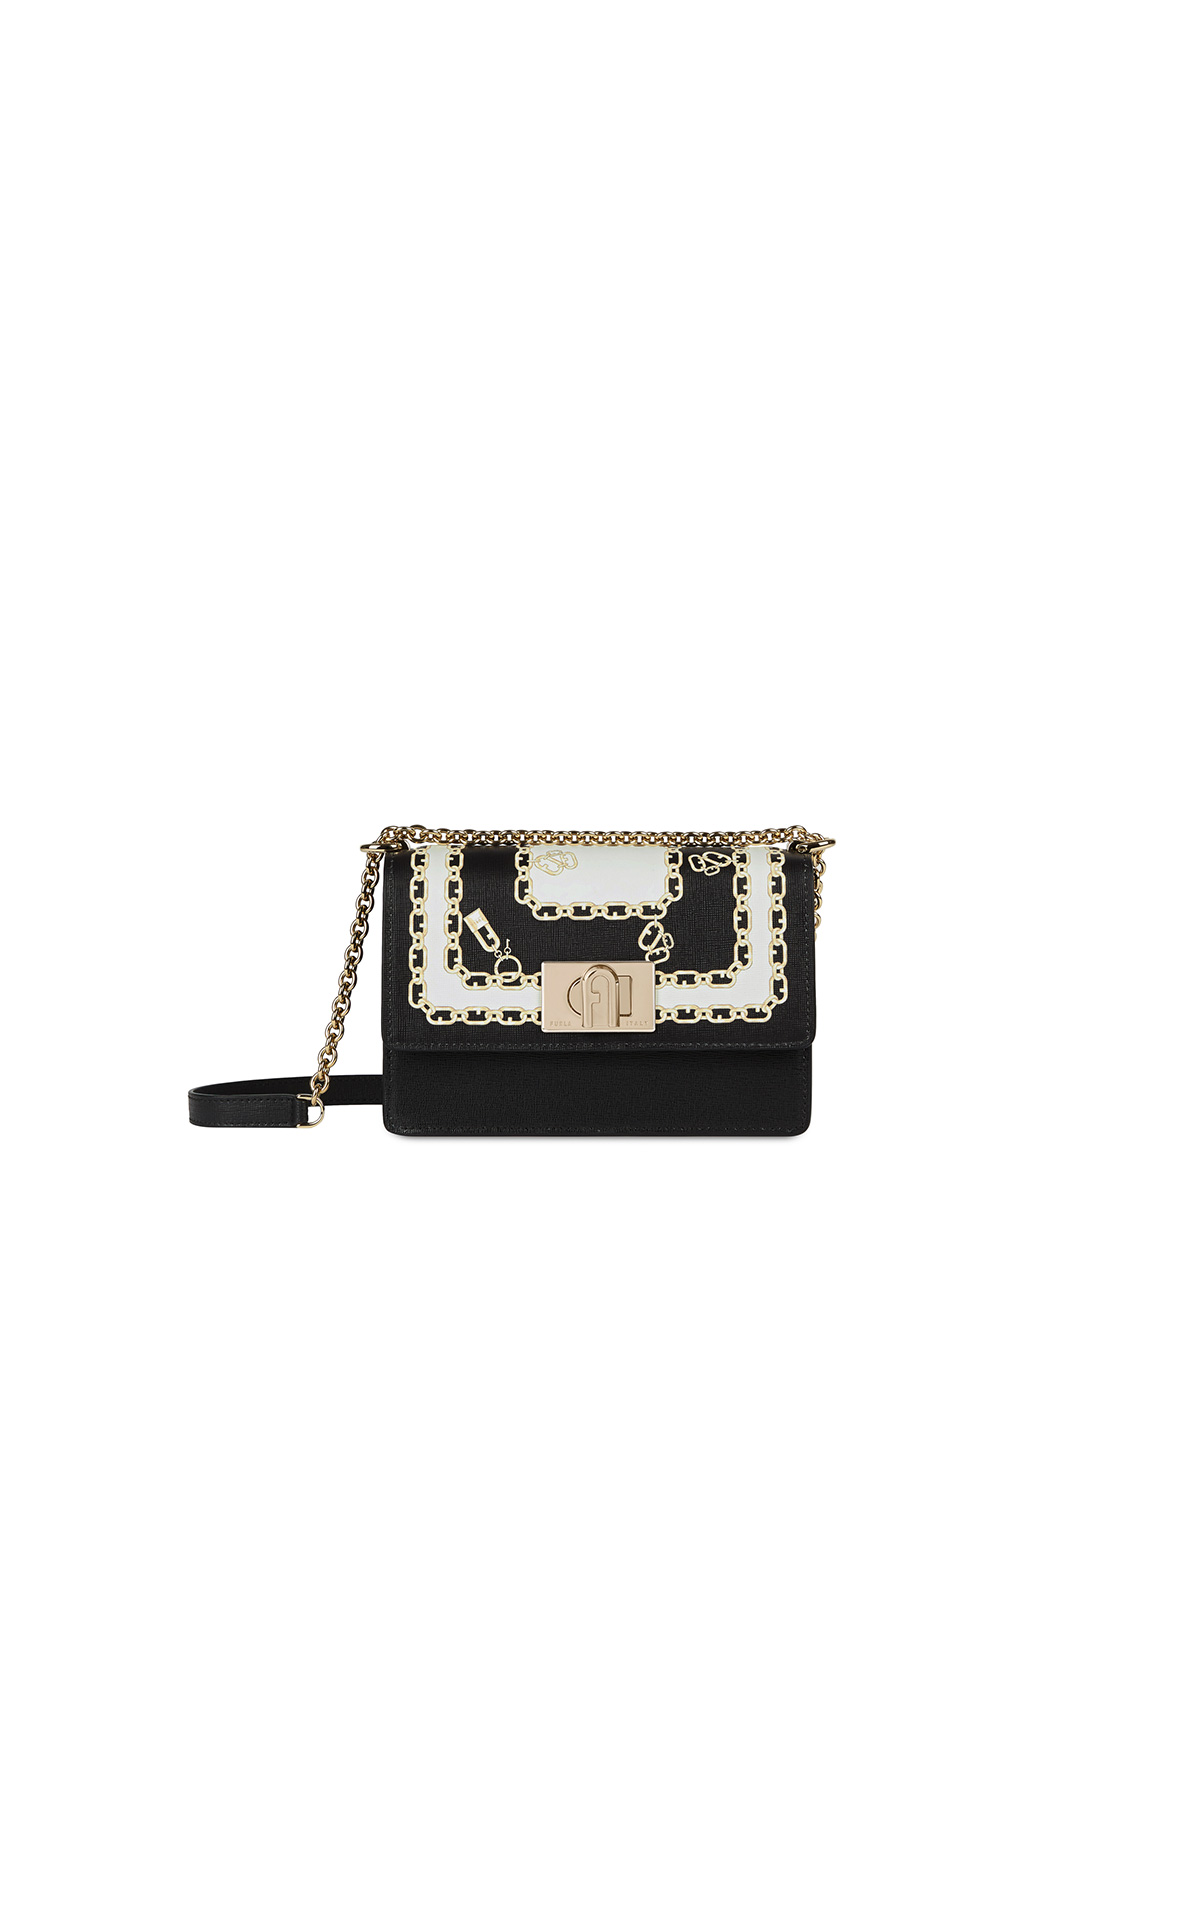 Furla 1927 Crossbody 20 Nero & Talco at The Bicester Village Shopping Collection